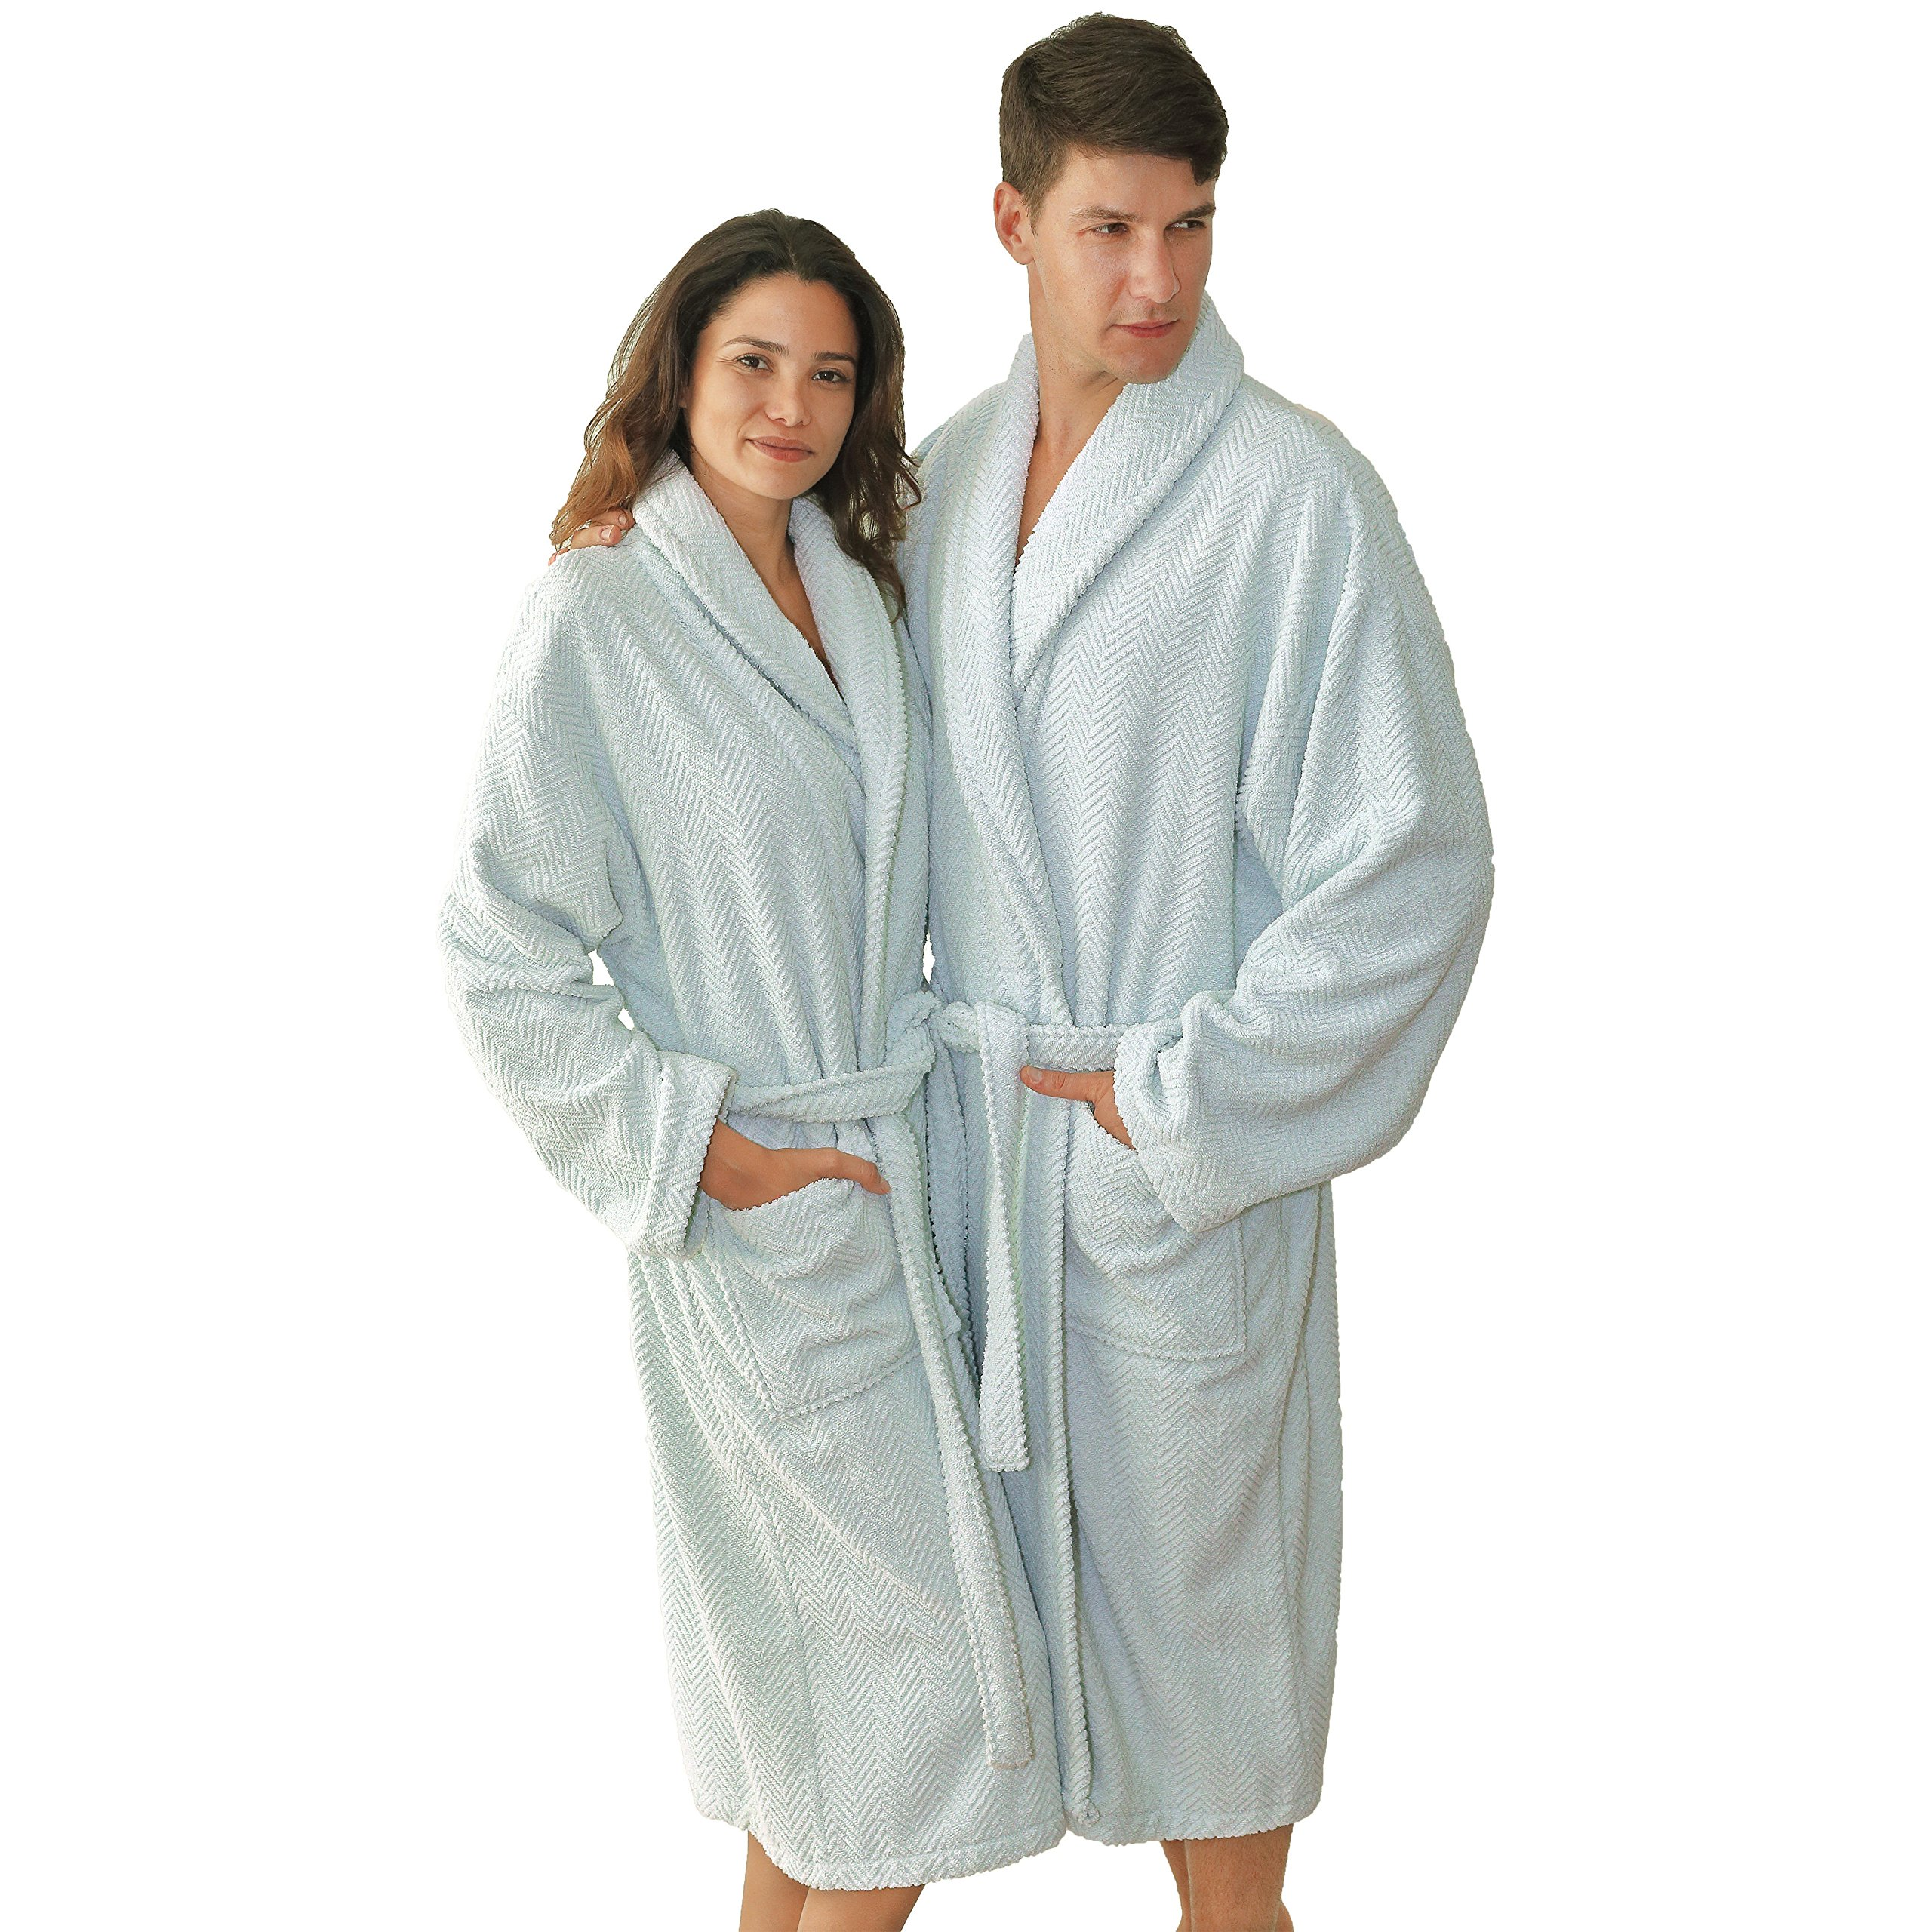 46 Inches Ice Blue Solid Color Small Medium Unisex Bathrobe, Light Blue Comfortable Spa Robe For Men And Women, Soft Cozy Luxurious Herringbone Weave Long Sleeves Belt Side Pockets, Turkish Cotton